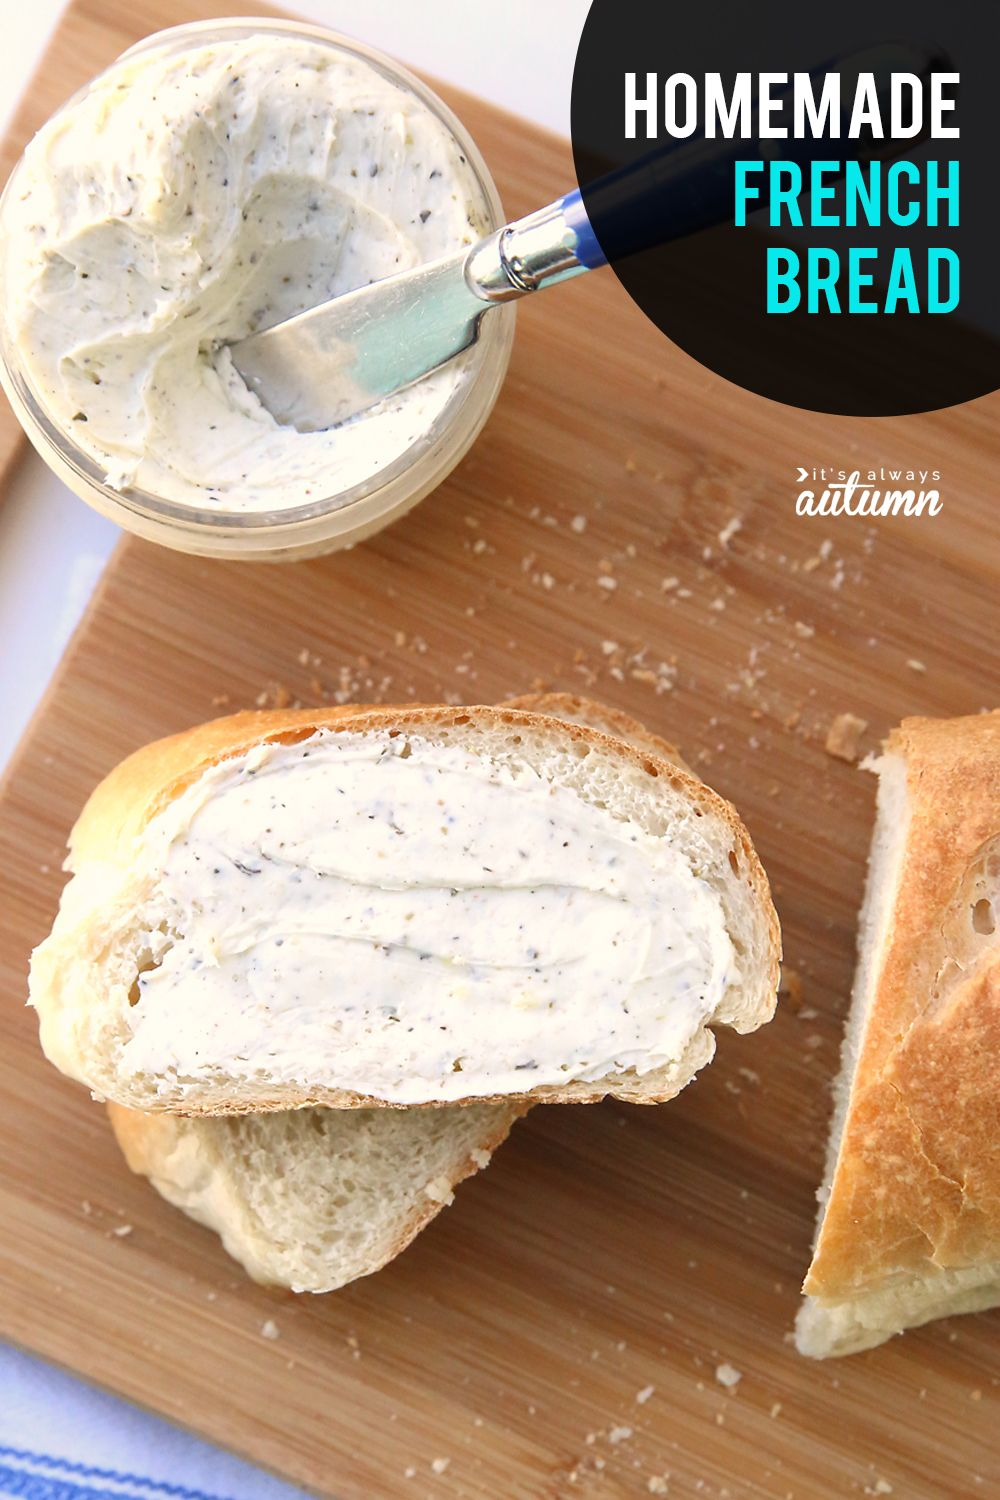 How to make homemade french bread! Click through for an easy french bread recipe you can make at home. #itsalwaysautumn #frenchbread #homemadefrenchbread #breadrecipe